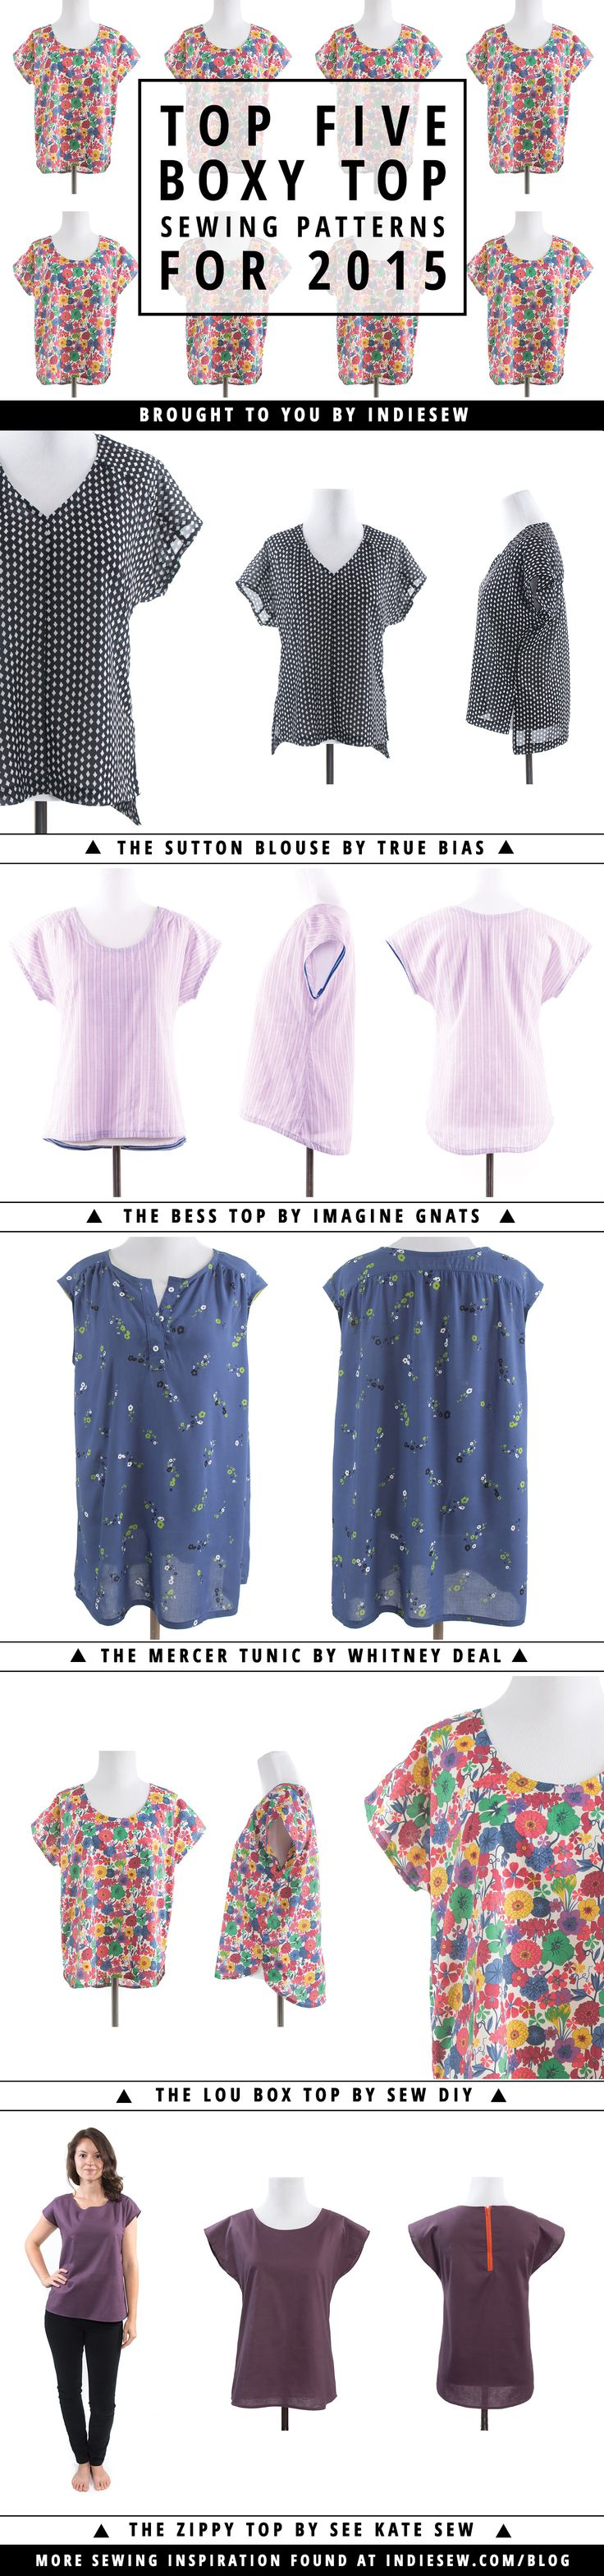 Find out which boxy top sewing patterns impressed us in 2015. | Indiesew.com